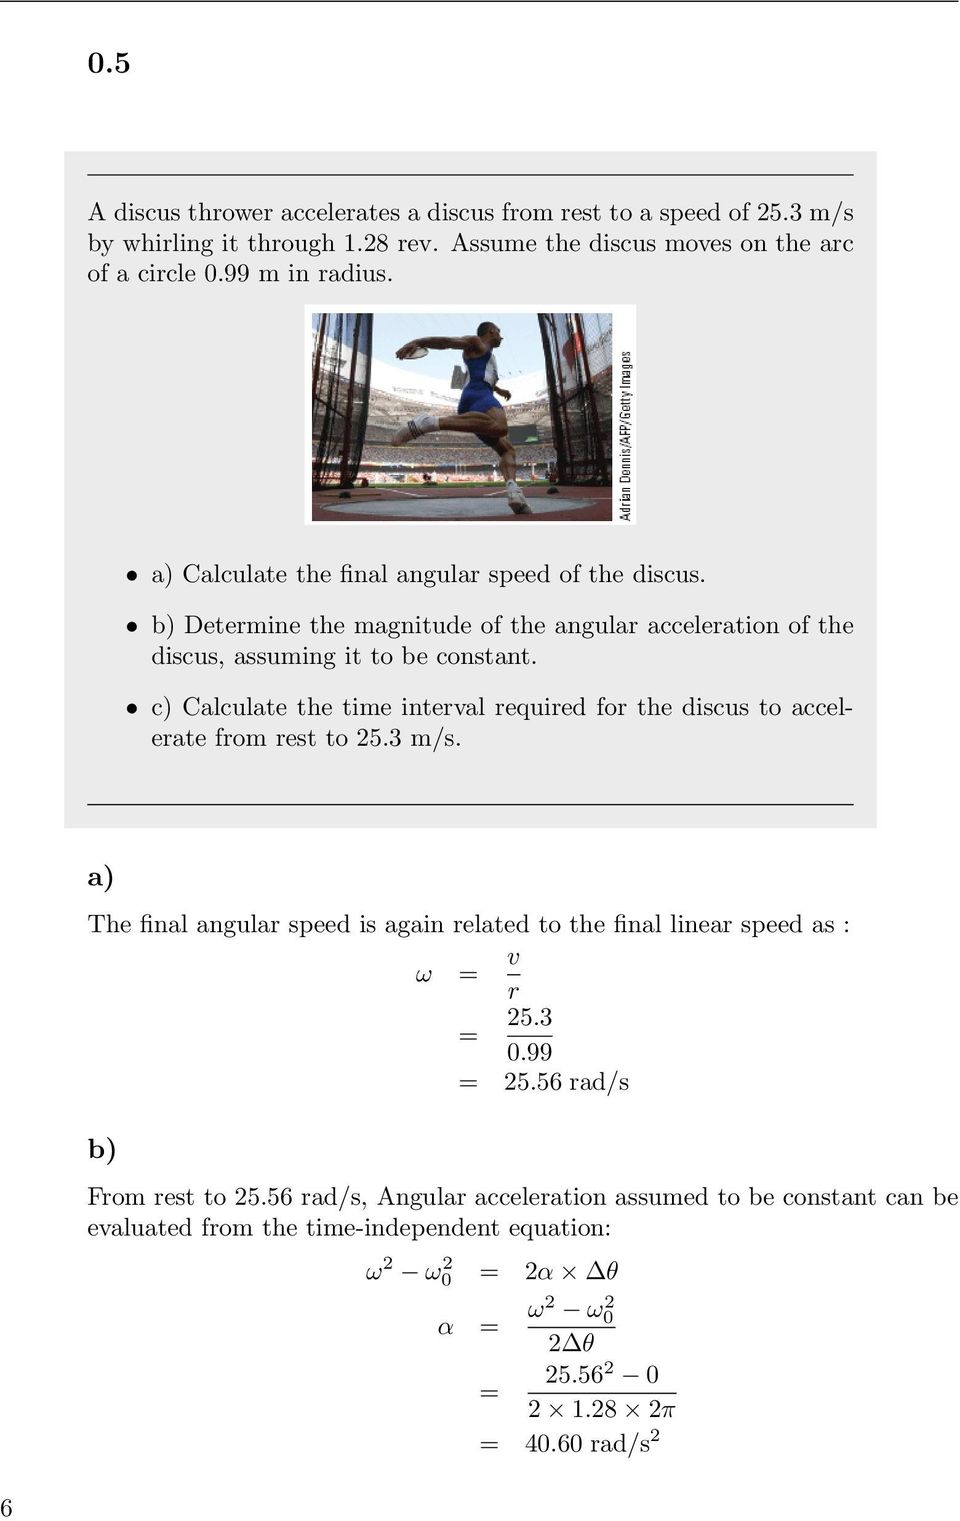 c) Calculate the time interval required for the discus to accelerate from rest to 25.3 m/s.